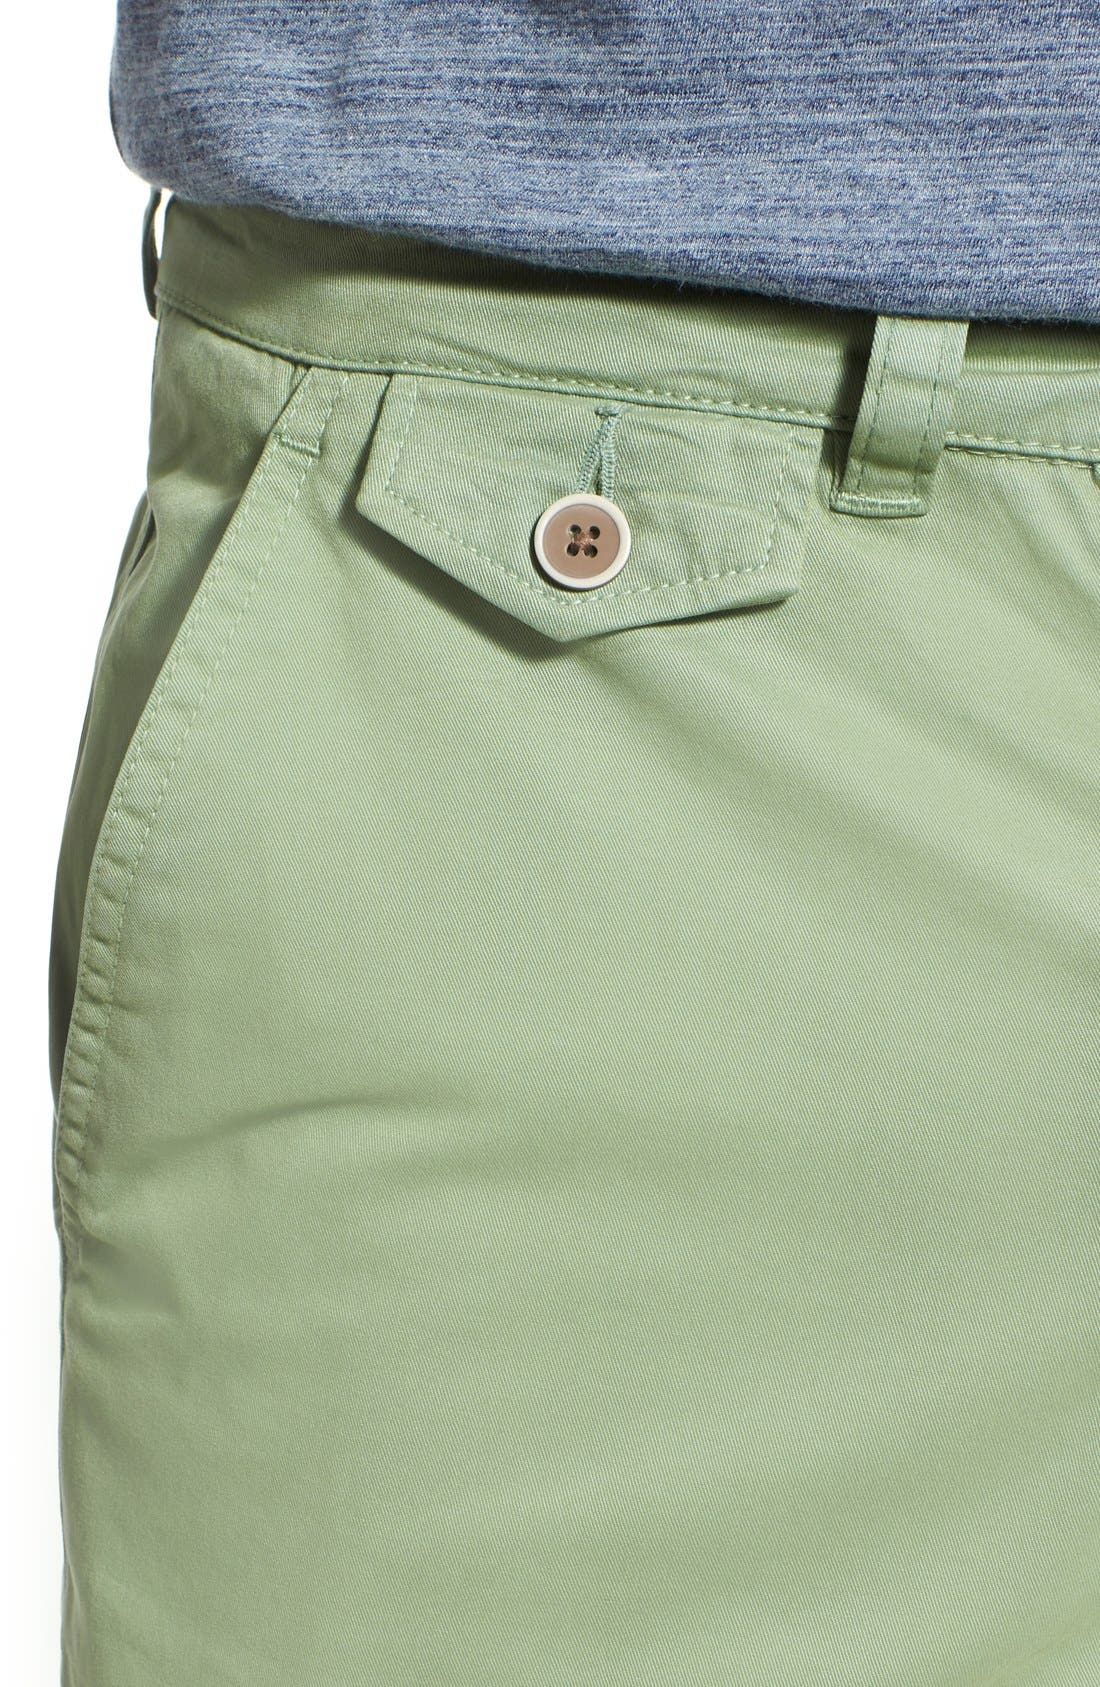 'Sunny' Stretch Twill Chino Shorts,                             Alternate thumbnail 22, color,